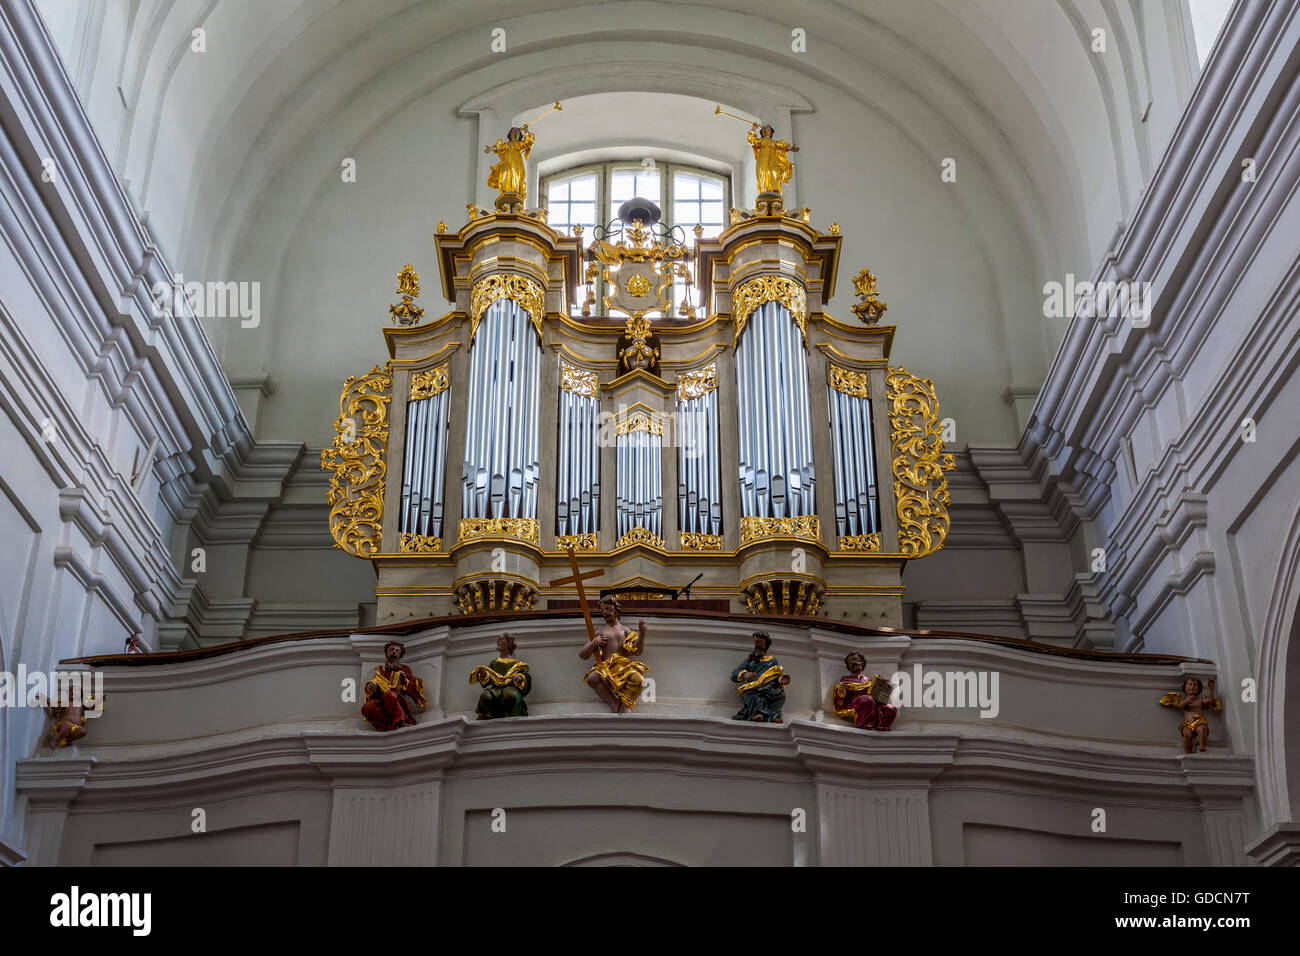 Janow Podlaski, baroque church, organs Poland, Podlasie, Europe. - Stock Image